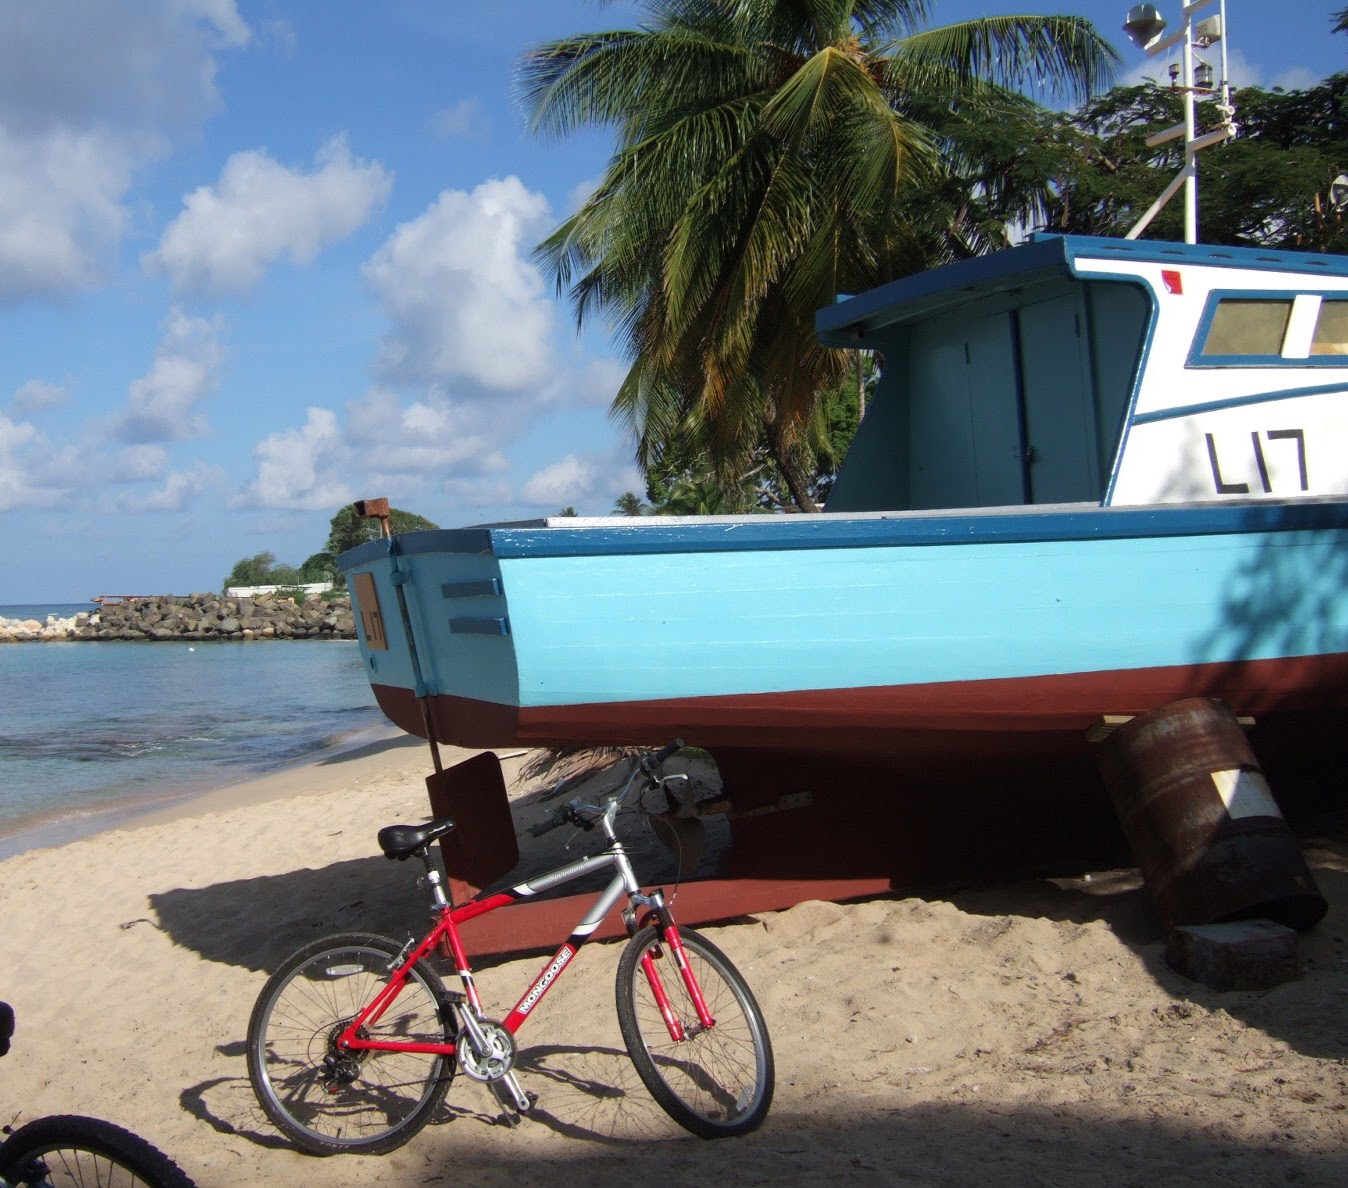 Barbados- How I ended up on the Missing People's List